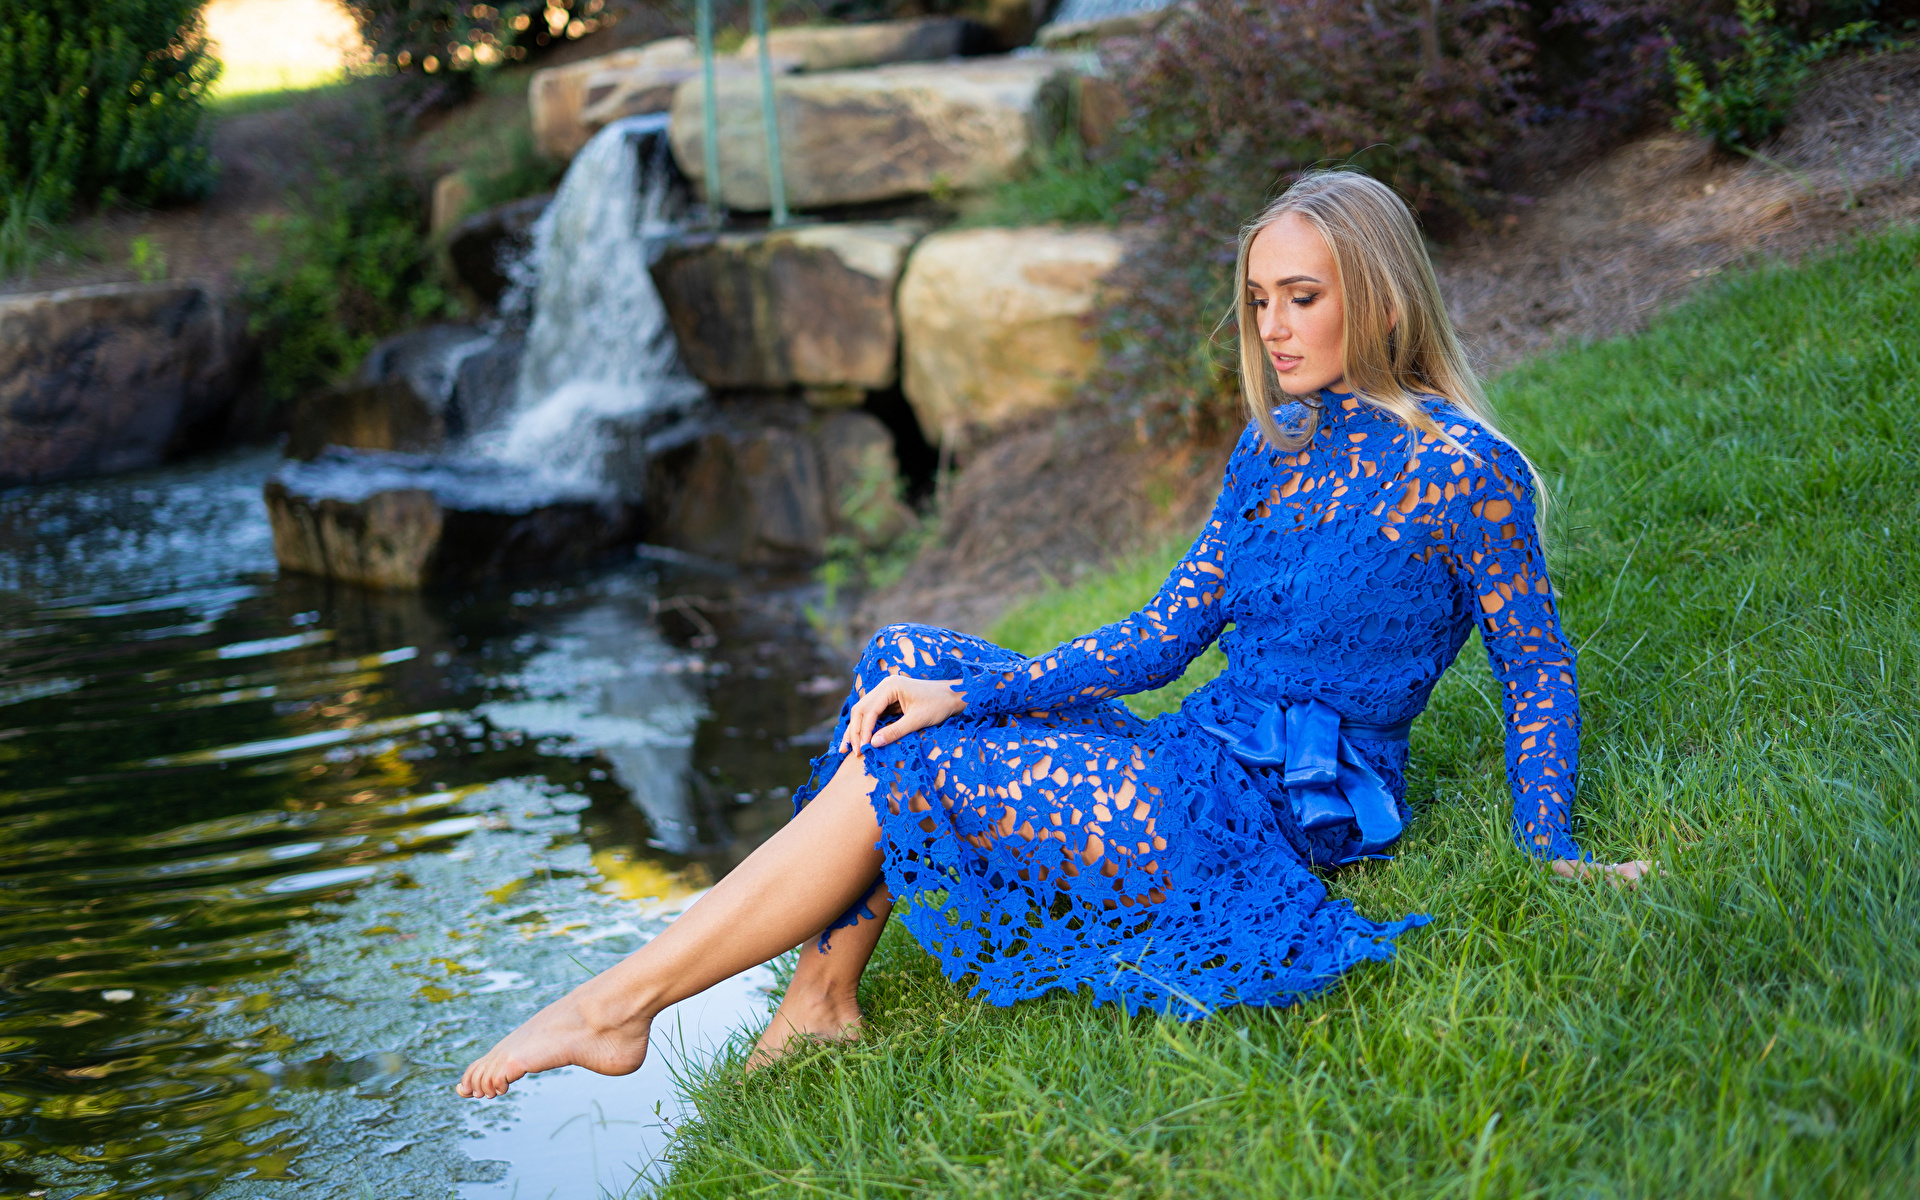 Pictures female Olga Clevenger Grass Sitting Creek Legs Dress Blonde girl 1920x1200 Girls young woman sit brook Creeks Stream Streams gown frock